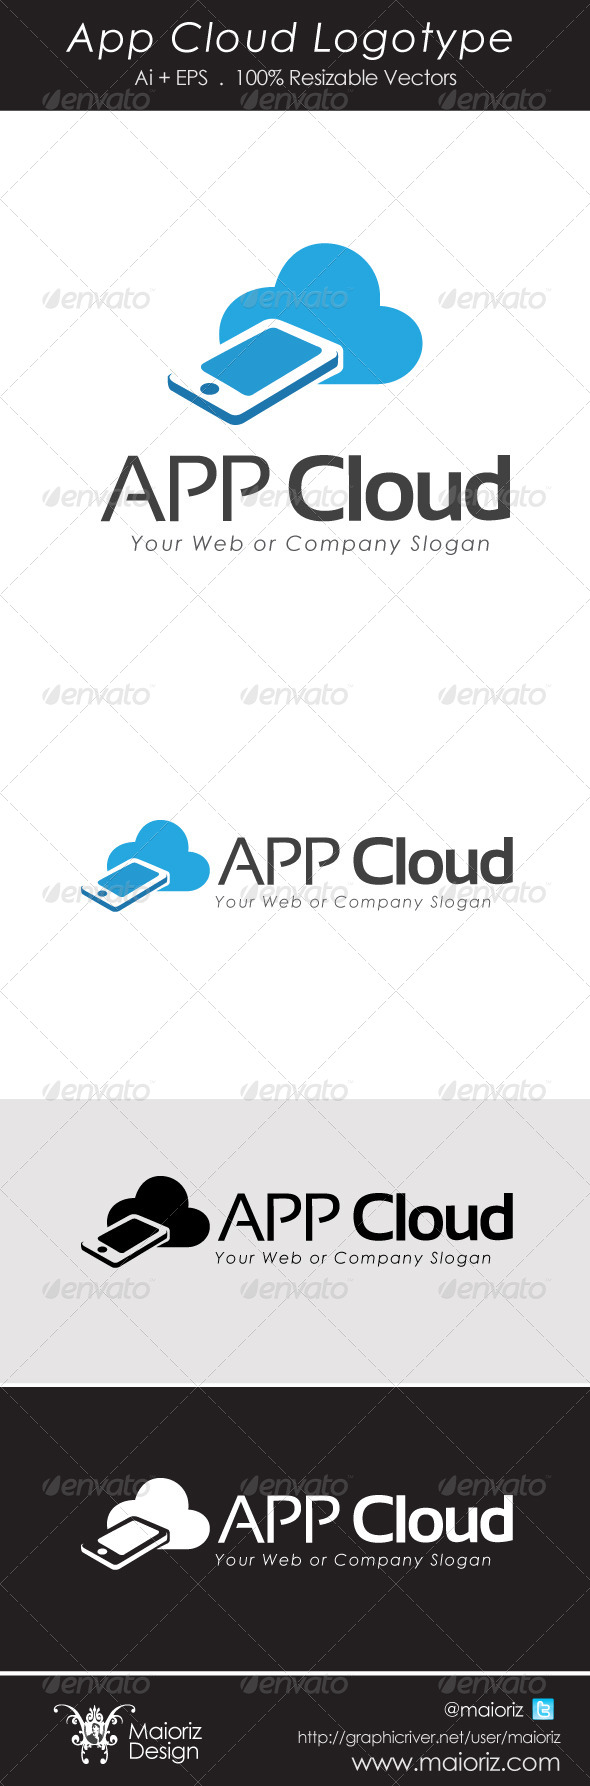 GraphicRiver App Cloud Logotype 4540948